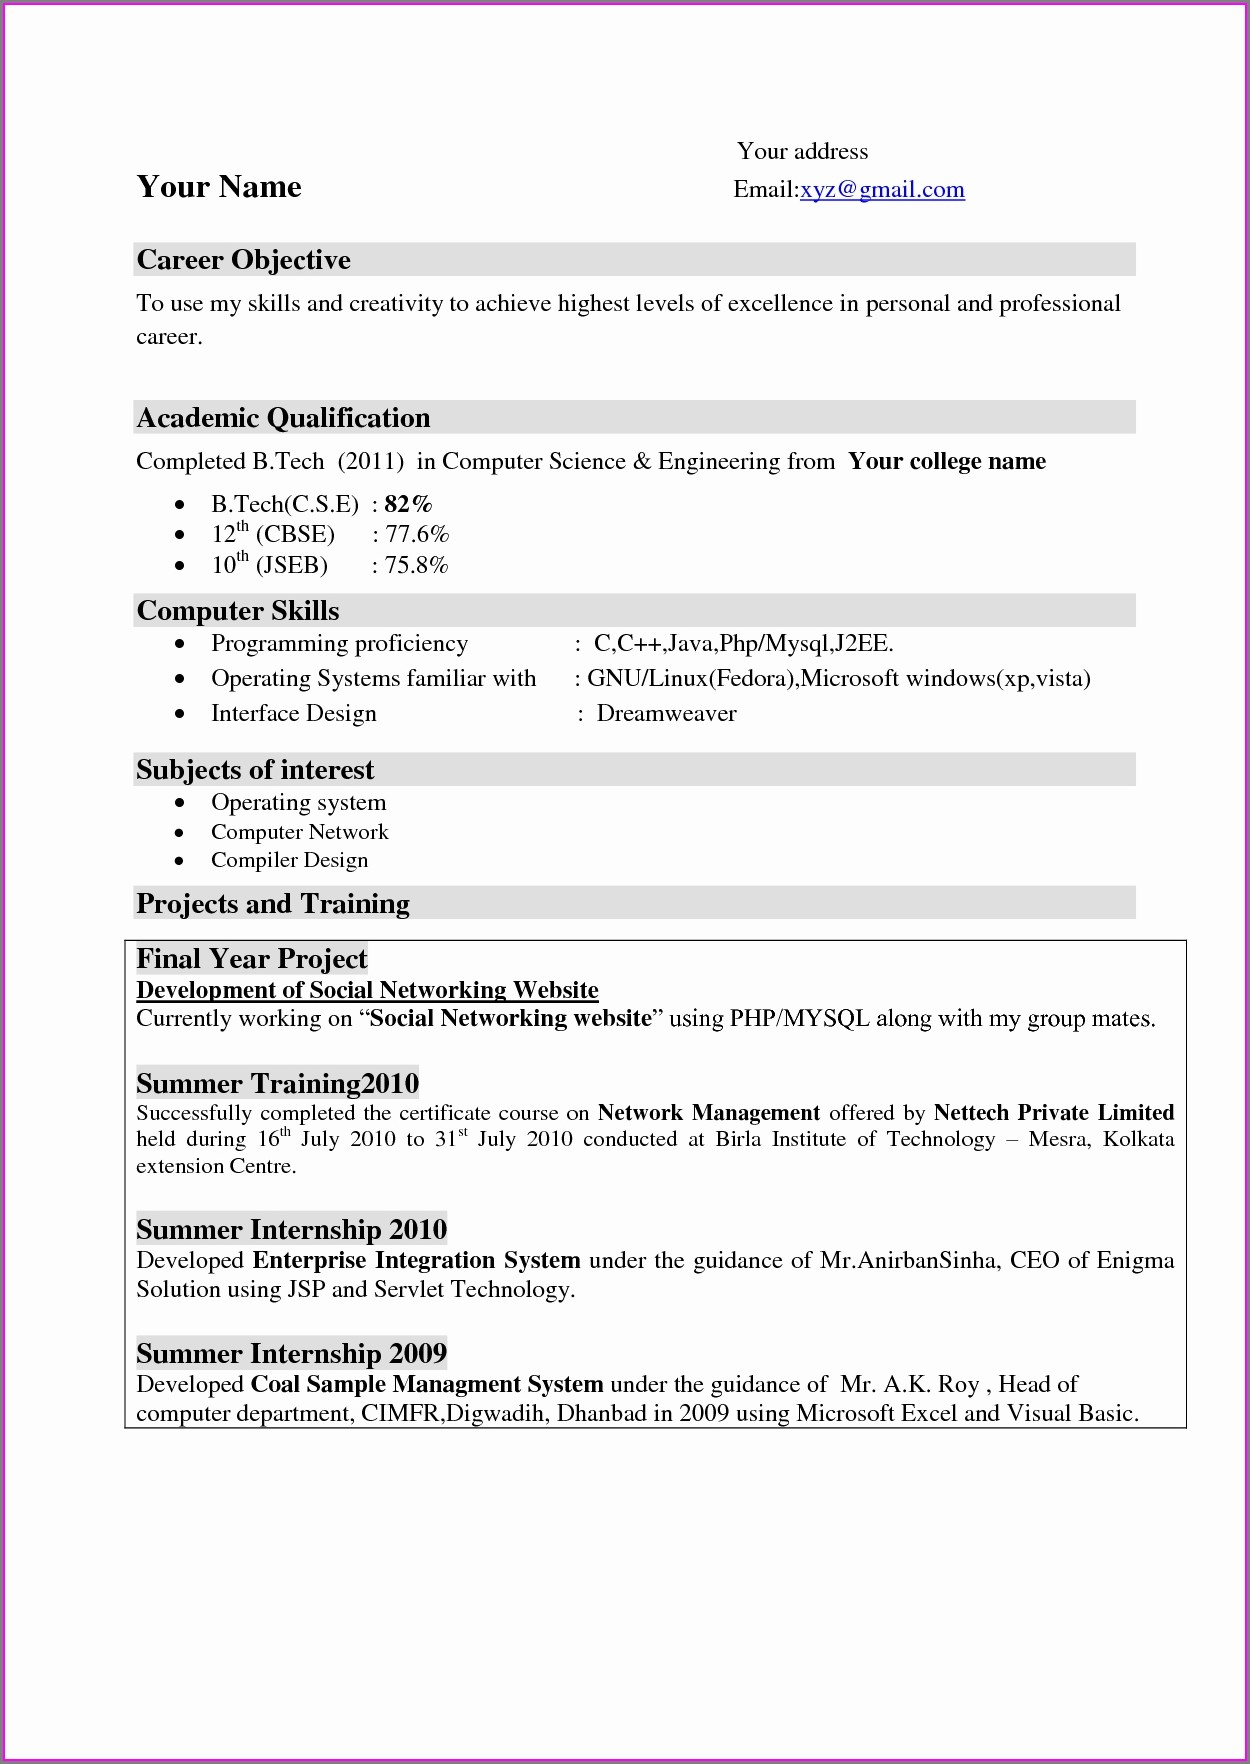 Resume Format For Engineering Students Free Download